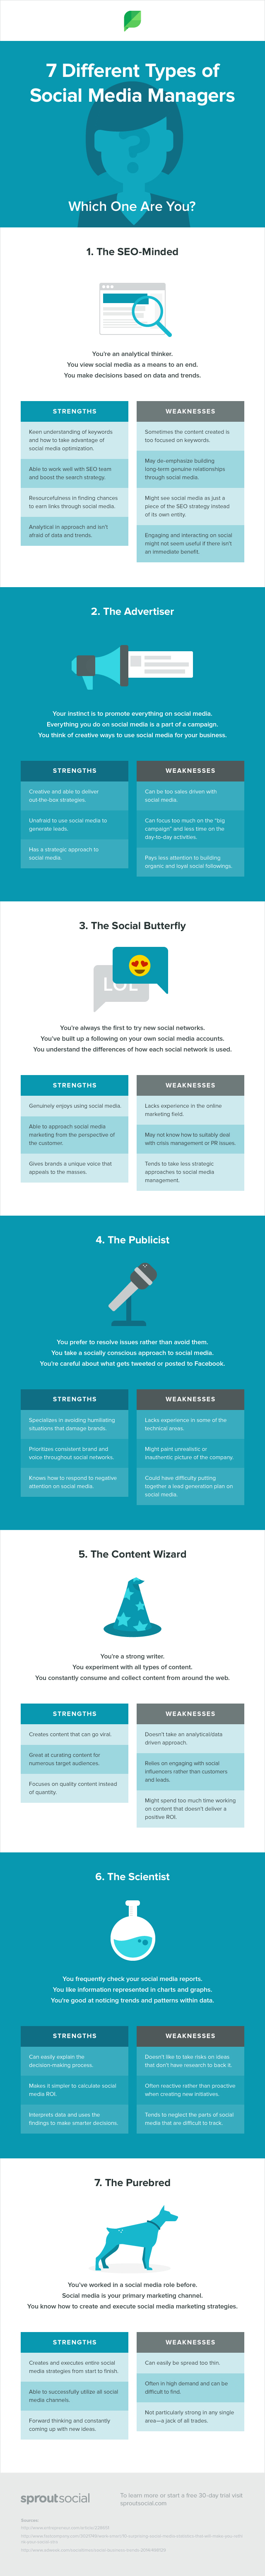 7 Different Types of Social Media Marketer Which One Are You